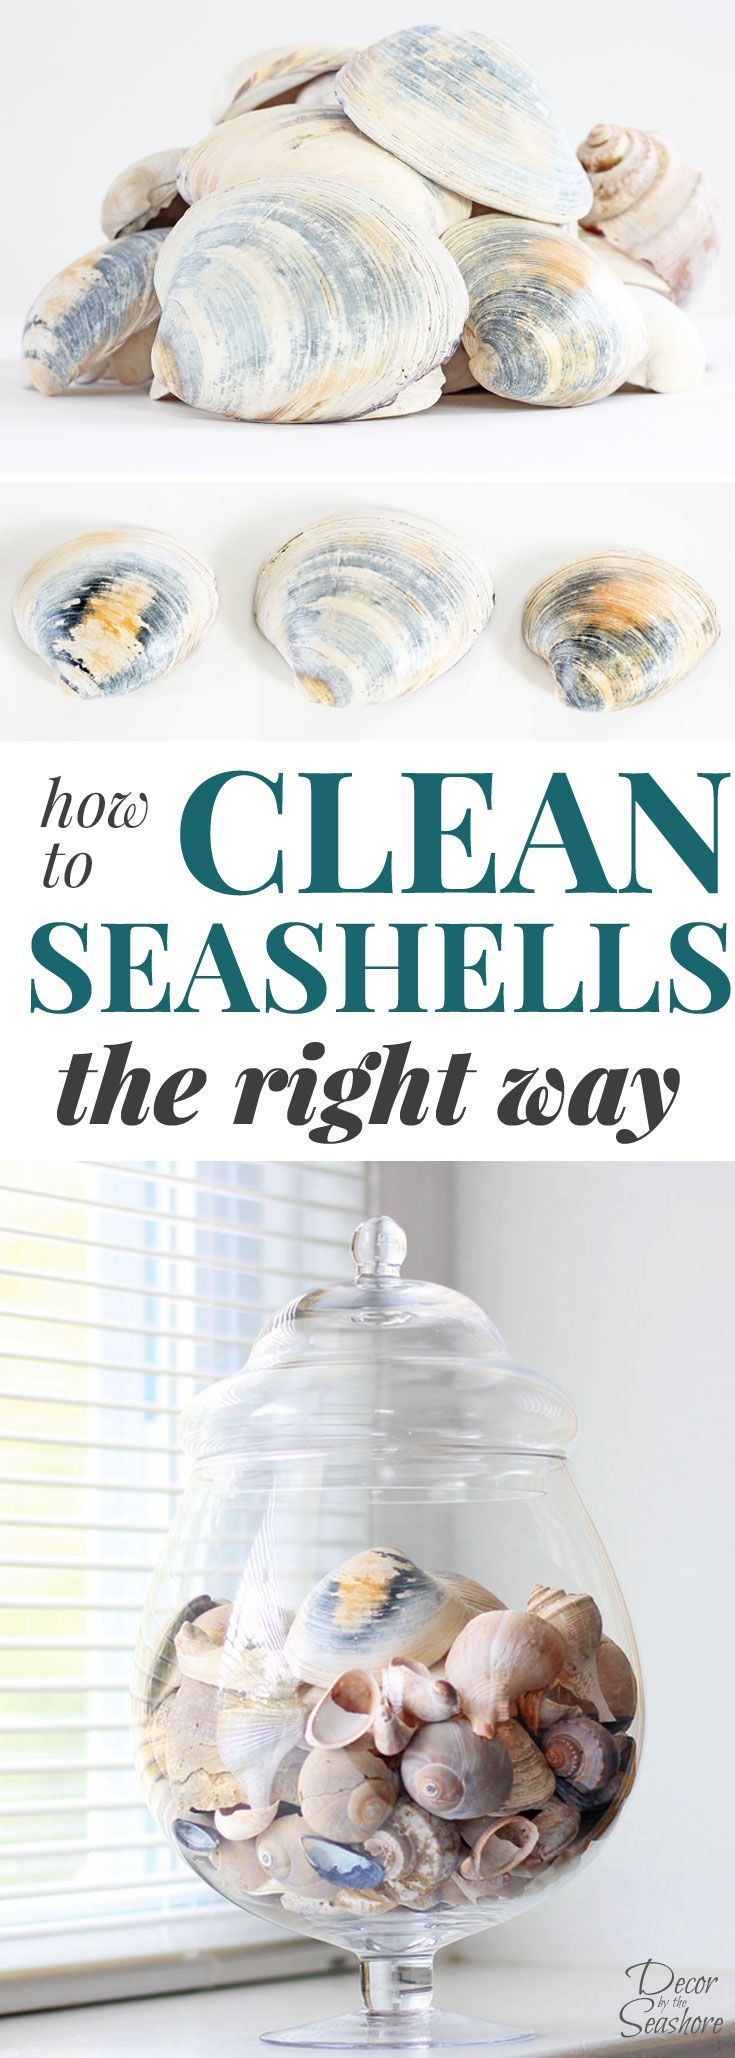 Do you know how to clean seashells the RIGHT way? Yes, there is a right way to…